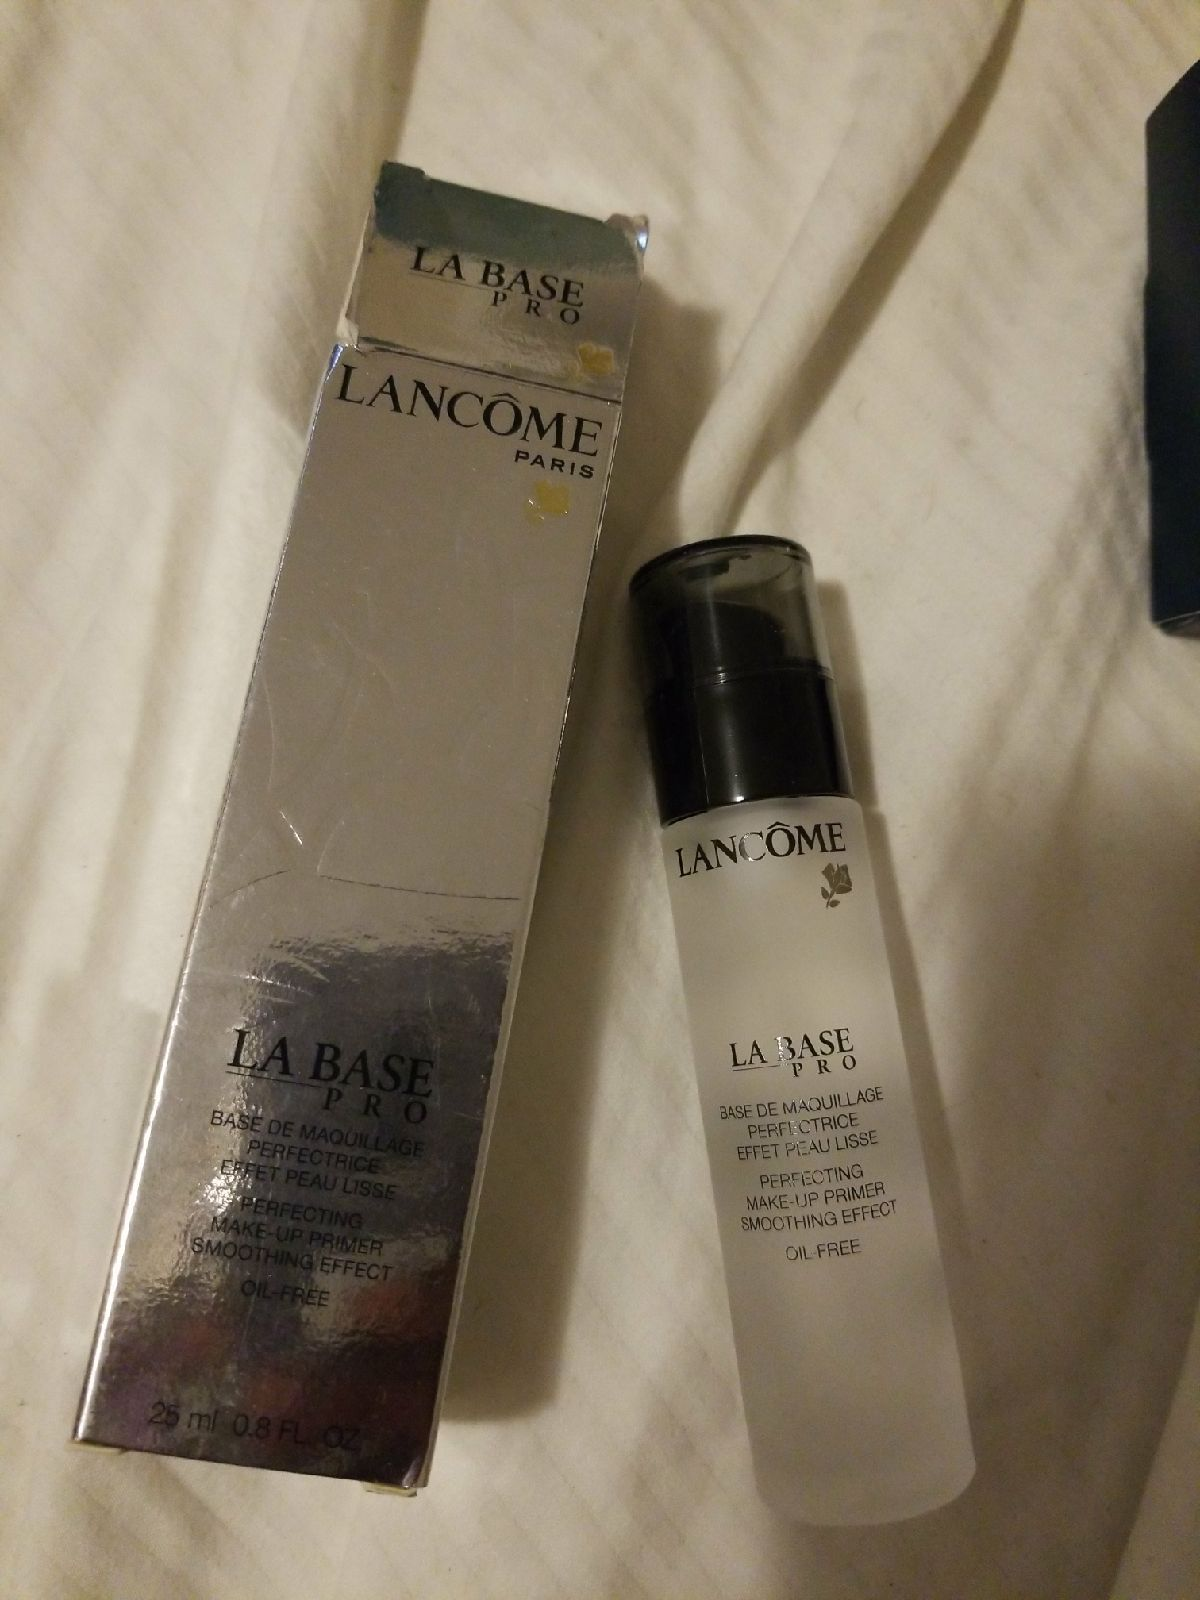 La Base Pro Perfecting Makeup Primer by Lancôme #15